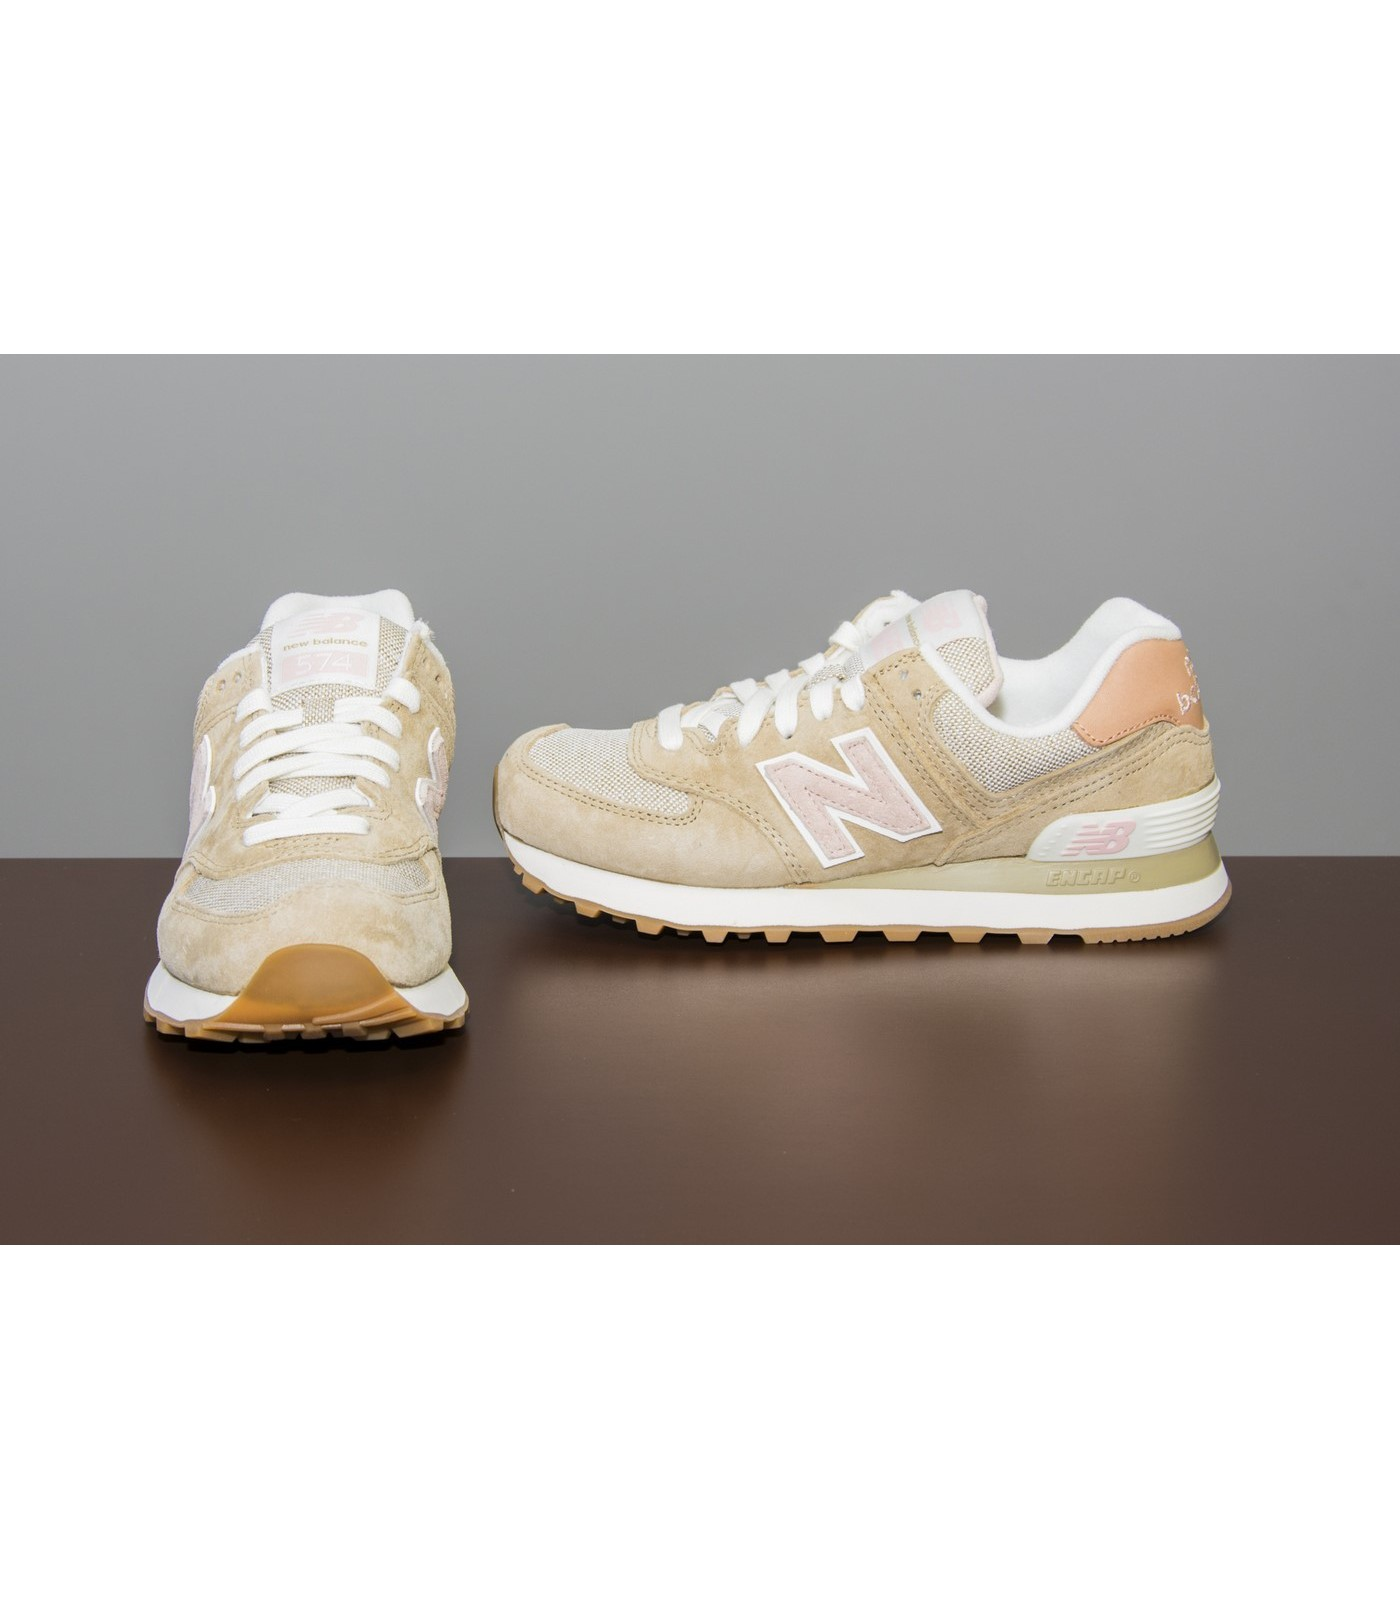 Sierra Ministerio poco  buy > new balance 574 grises y rosas, Up to 60% OFF